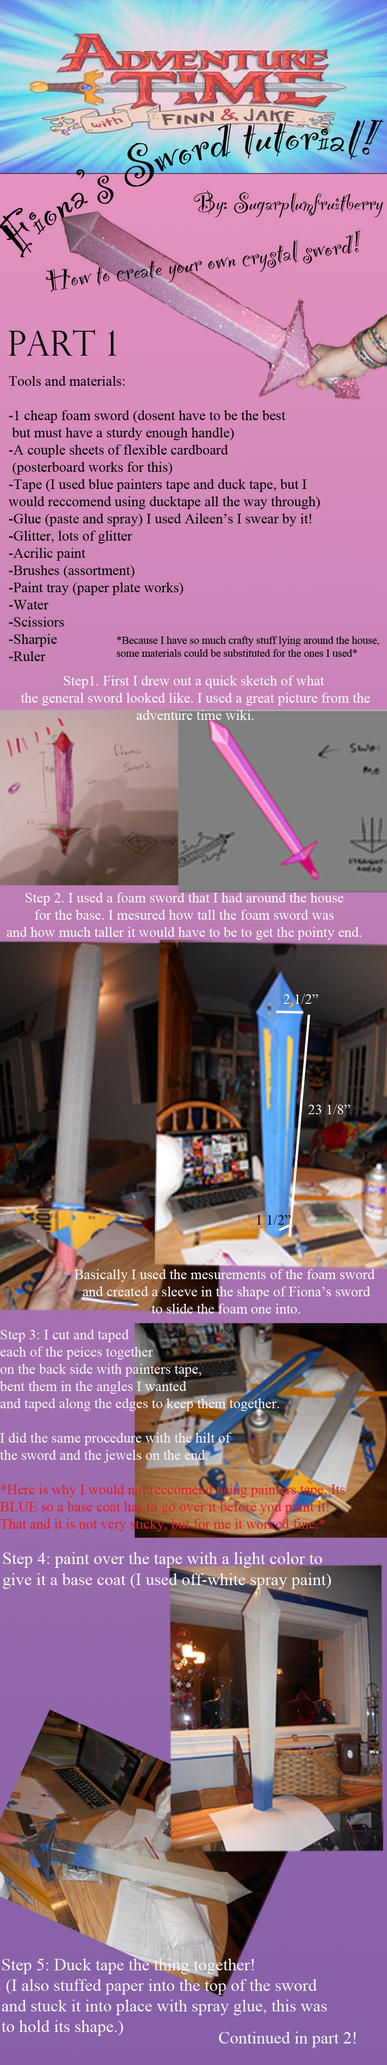 Fiona's Sword Tutorial part 1 by SugarplumFruitBerry